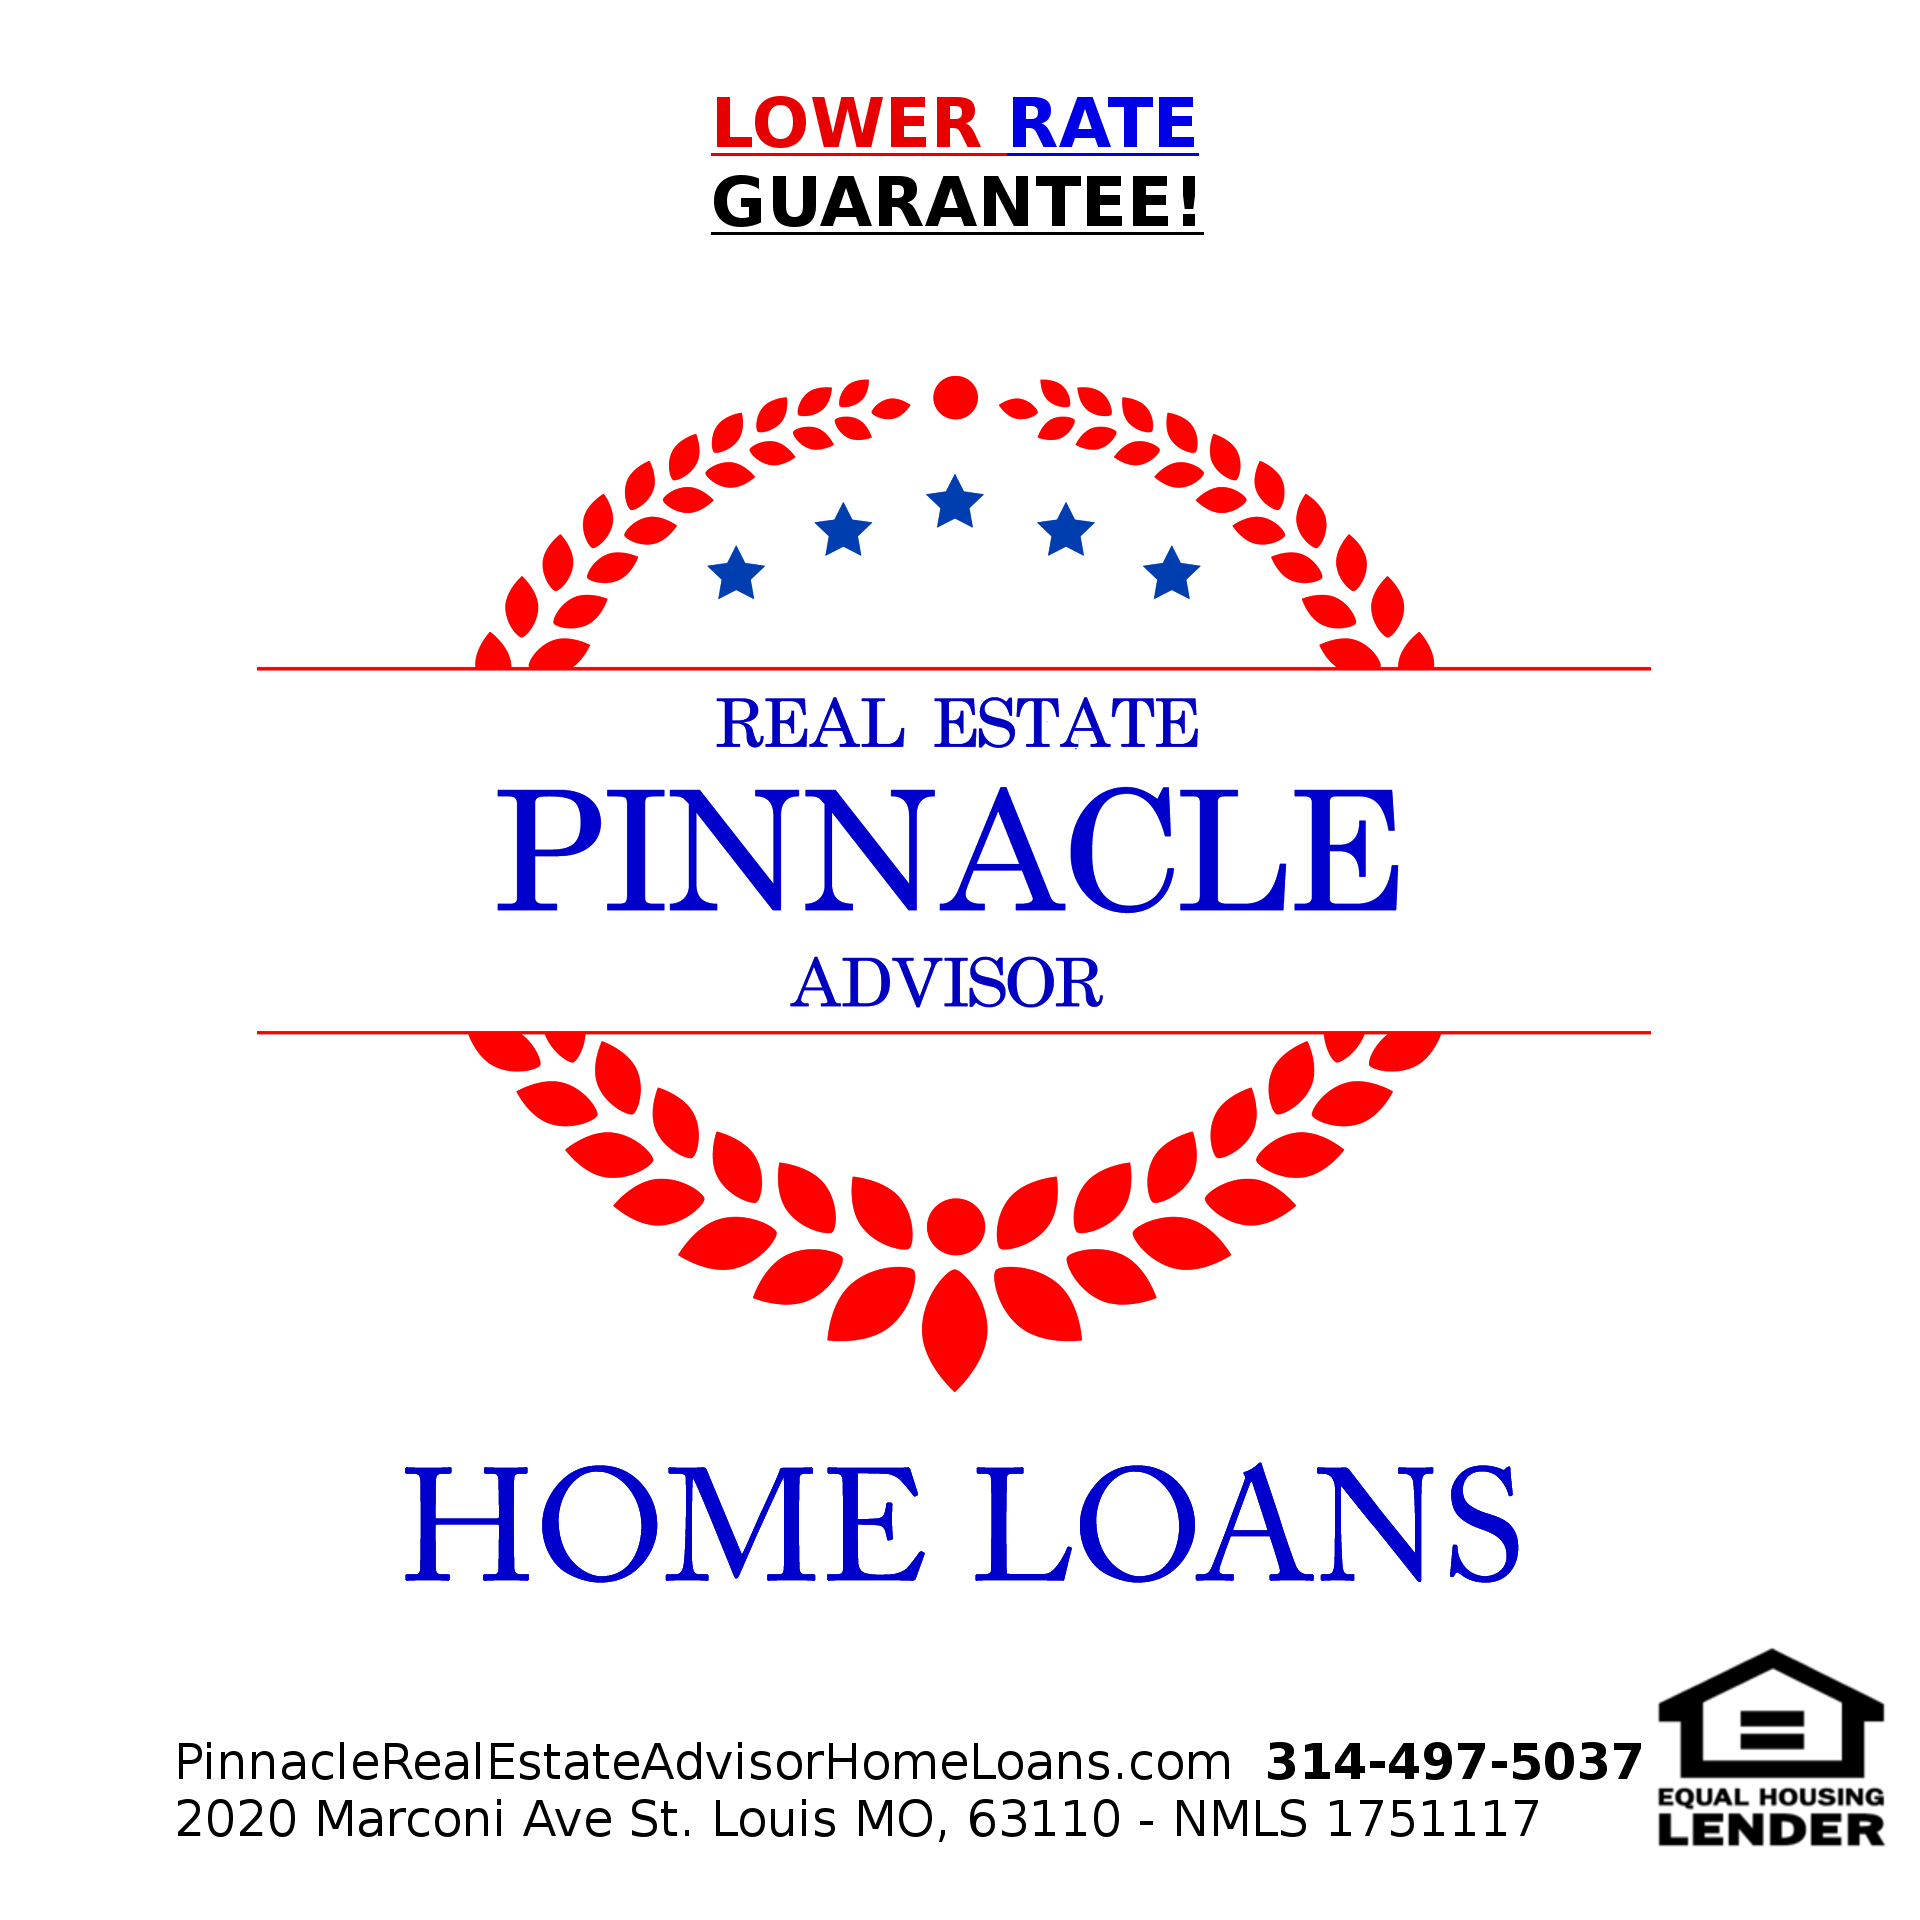 Pinnacle Real Estate Advisor Home Loans Lower Rate Guarantee